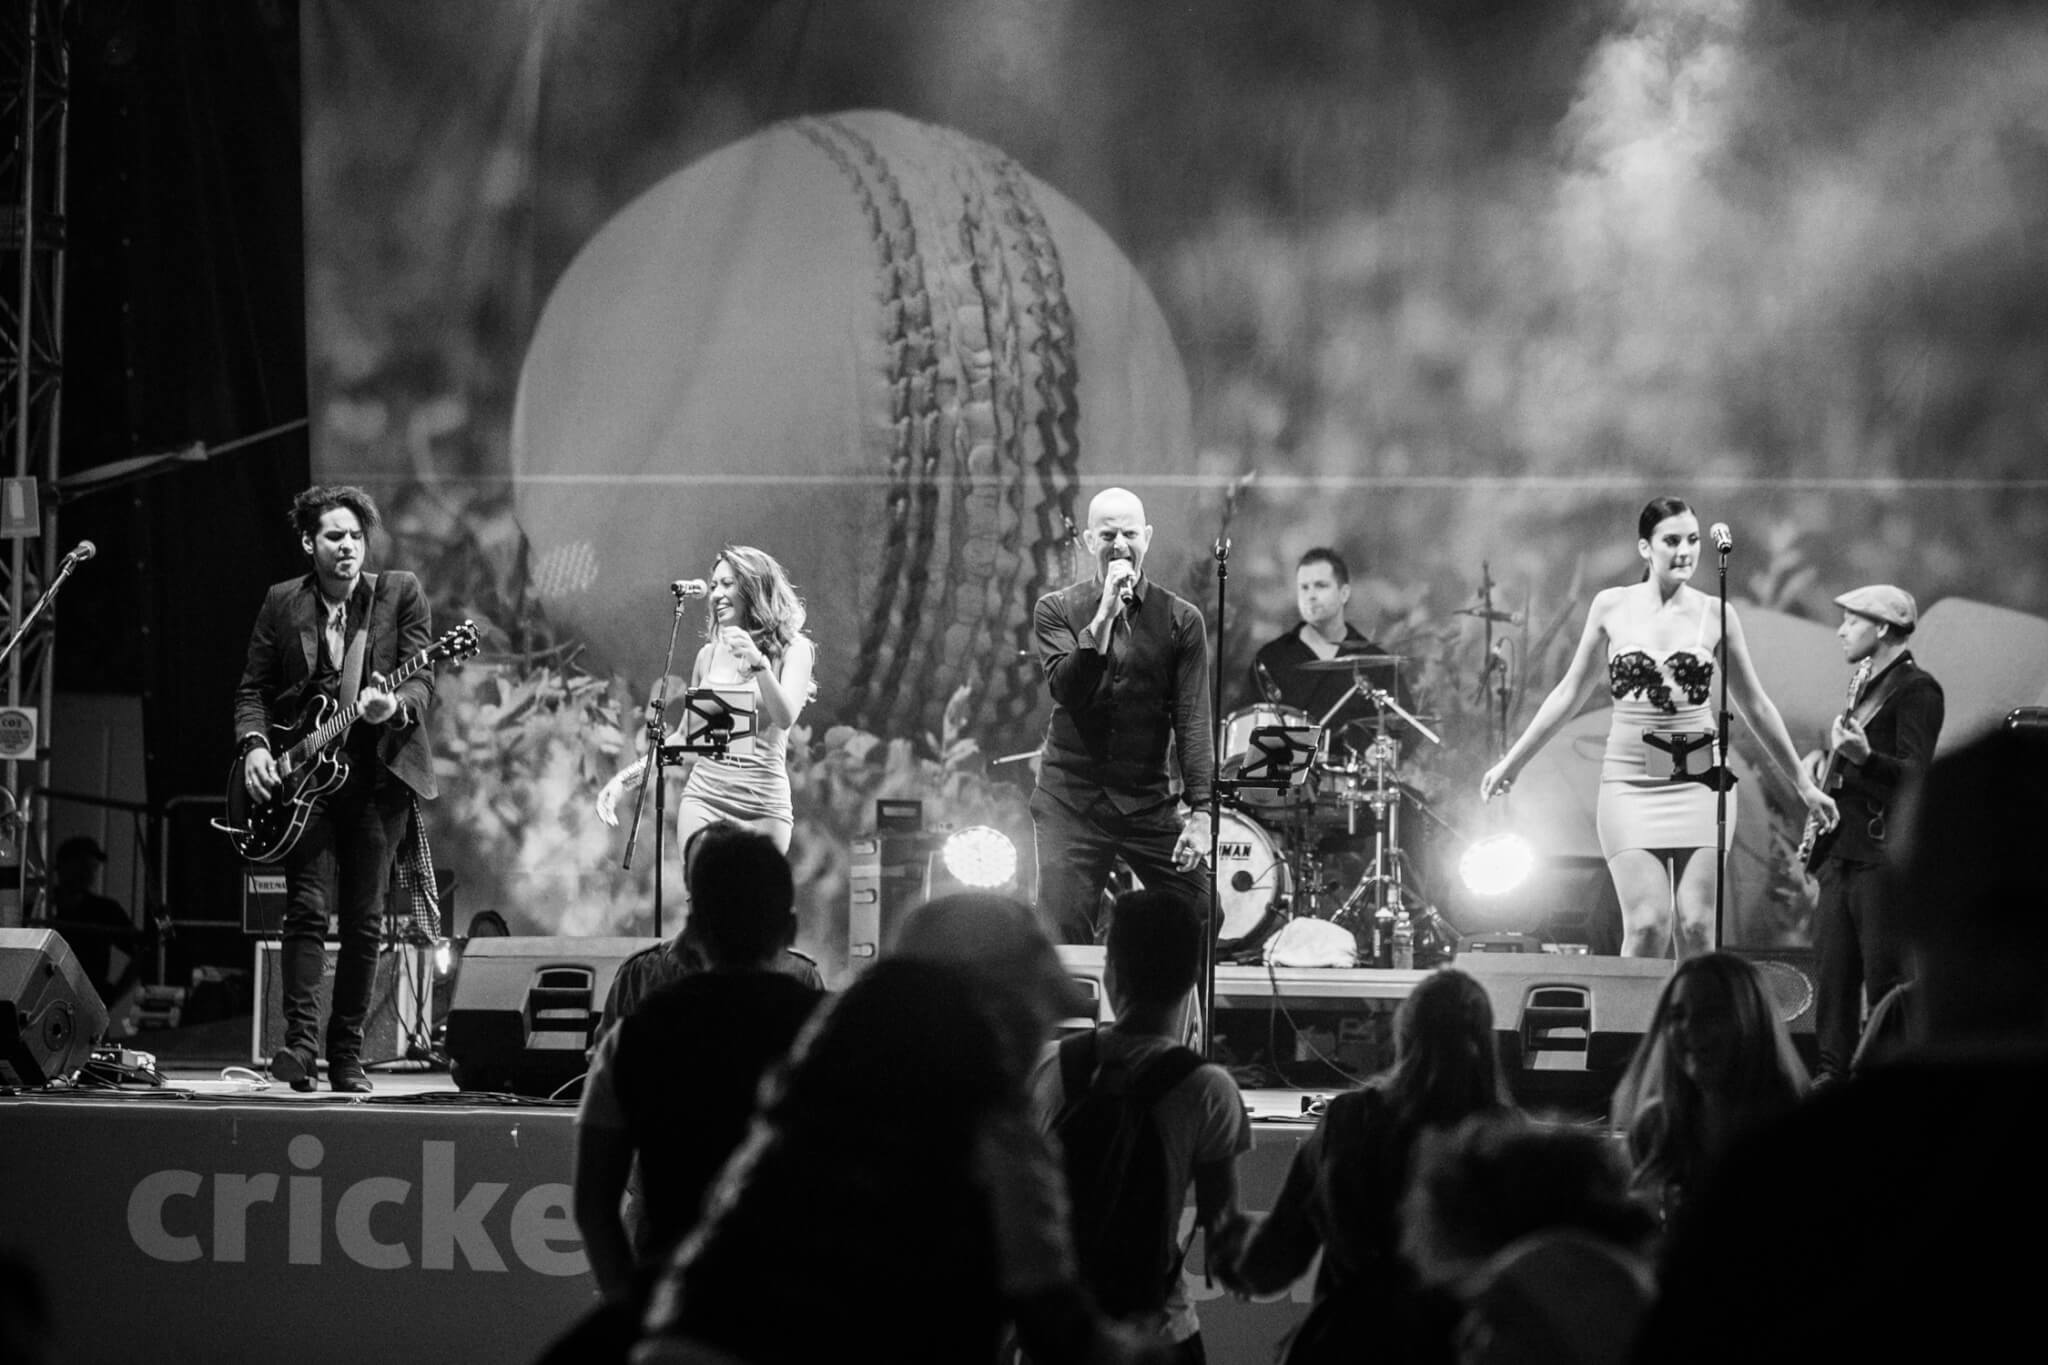 Chunky Jam world cup cricket-12 corporate cover band-wedding band-party band-melbourne